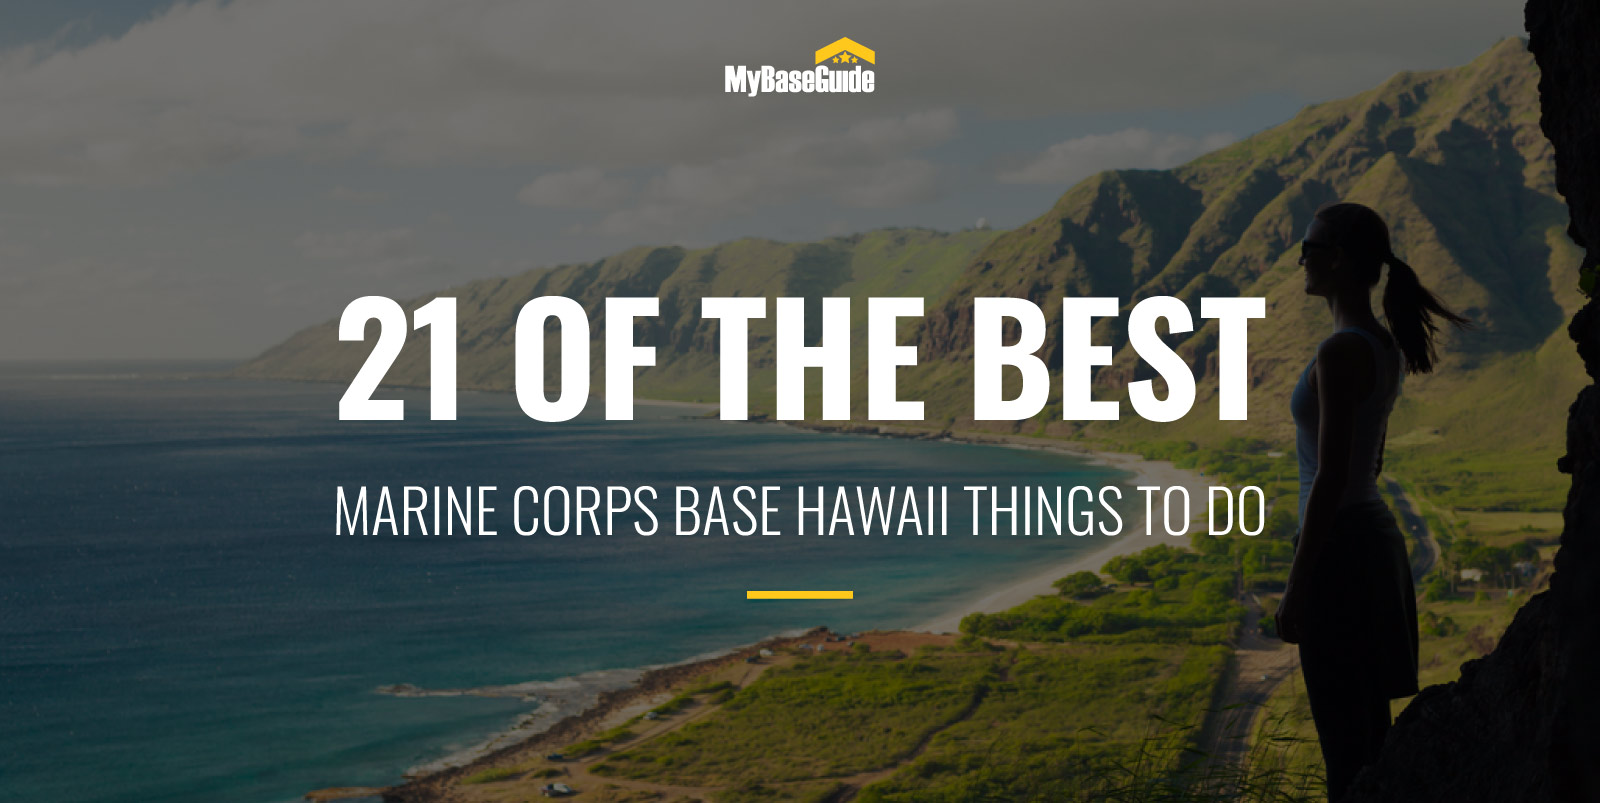 21 of the Best Things To Do on Marine Corps Base Hawaii (MCBH)